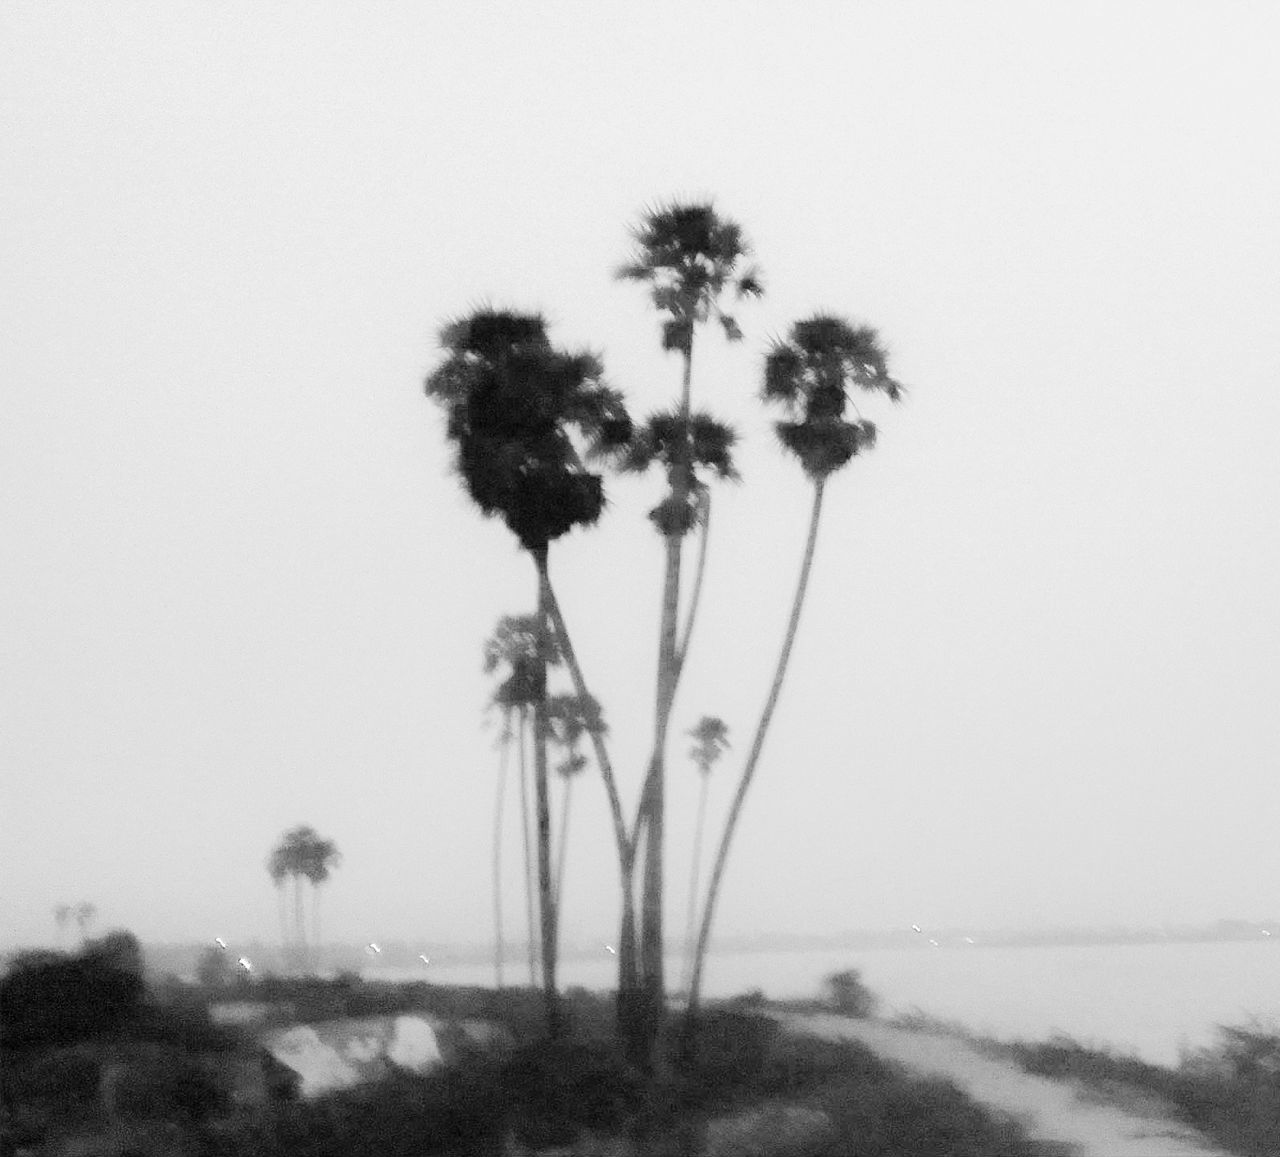 Beach Beauty In Nature Beauty In Nature Blackandwhite Clear Sky Day Dreamy Fine Art Photography Growth Lake Lake View Nature No People Outdoors Palm Tree Scenics Sea Sky Soft The Week Of Eyeem Tranquil Scene Tree Tree Water White